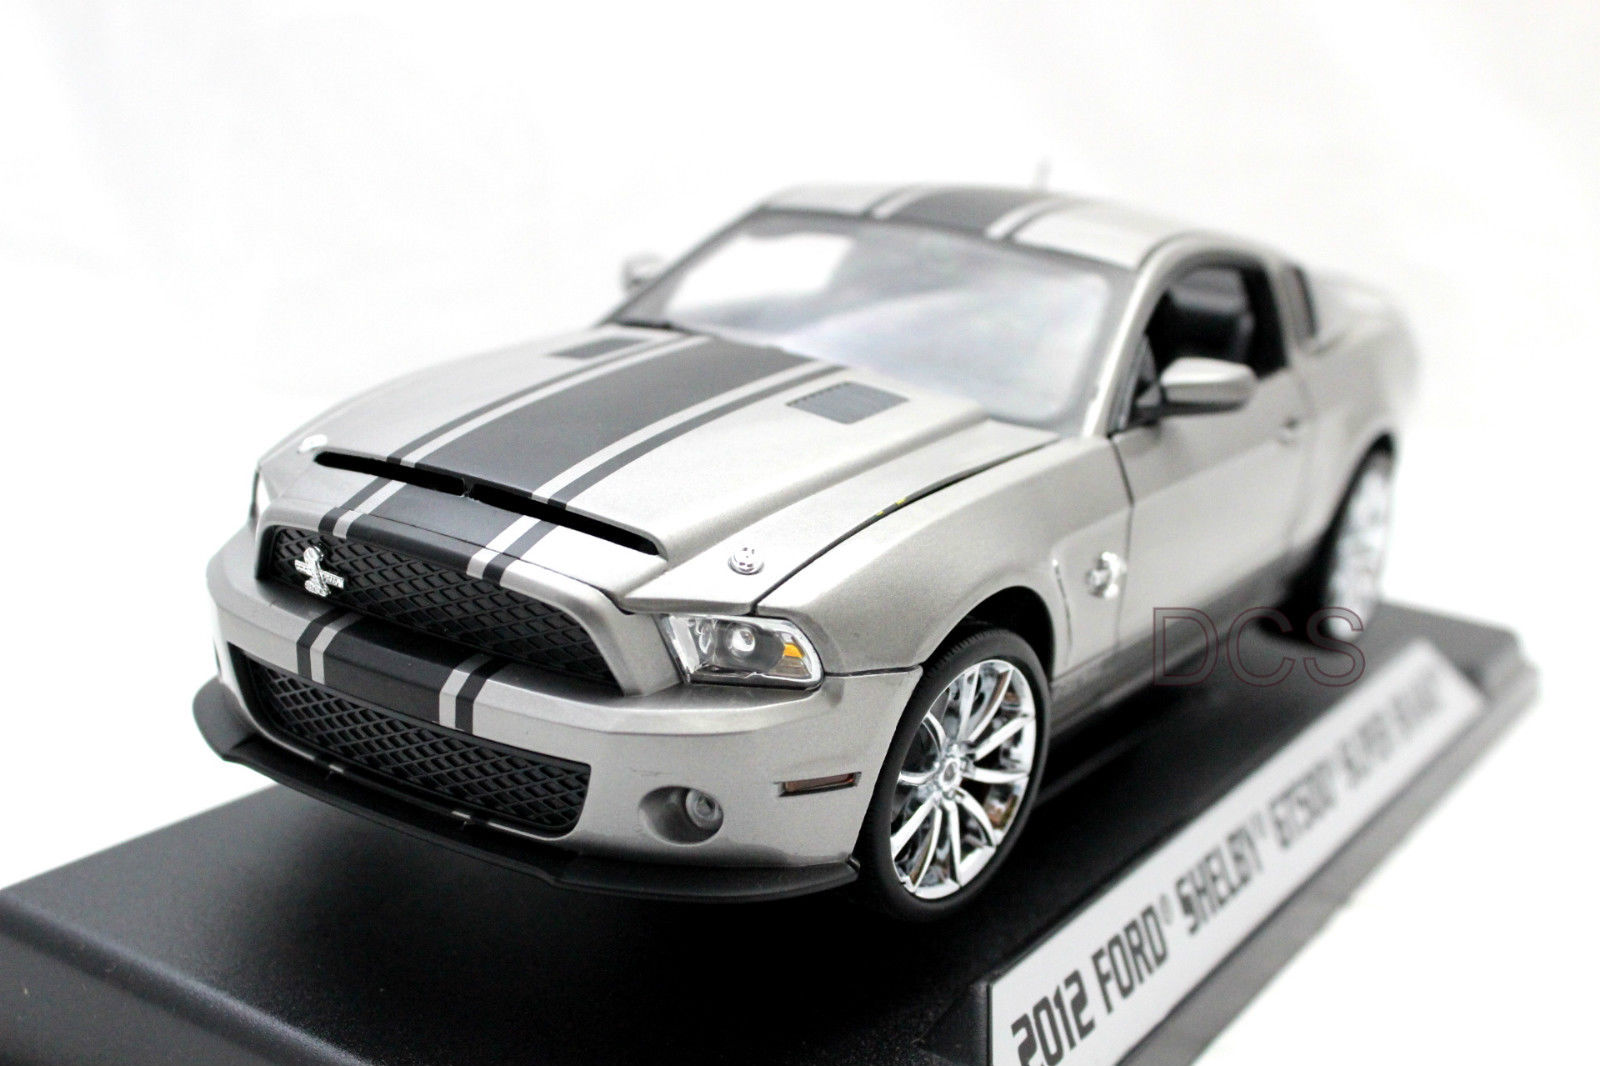 01370 SHELBY COLLECTIBLES FORD SHELBY GT500 SUPER SNAKE 2012